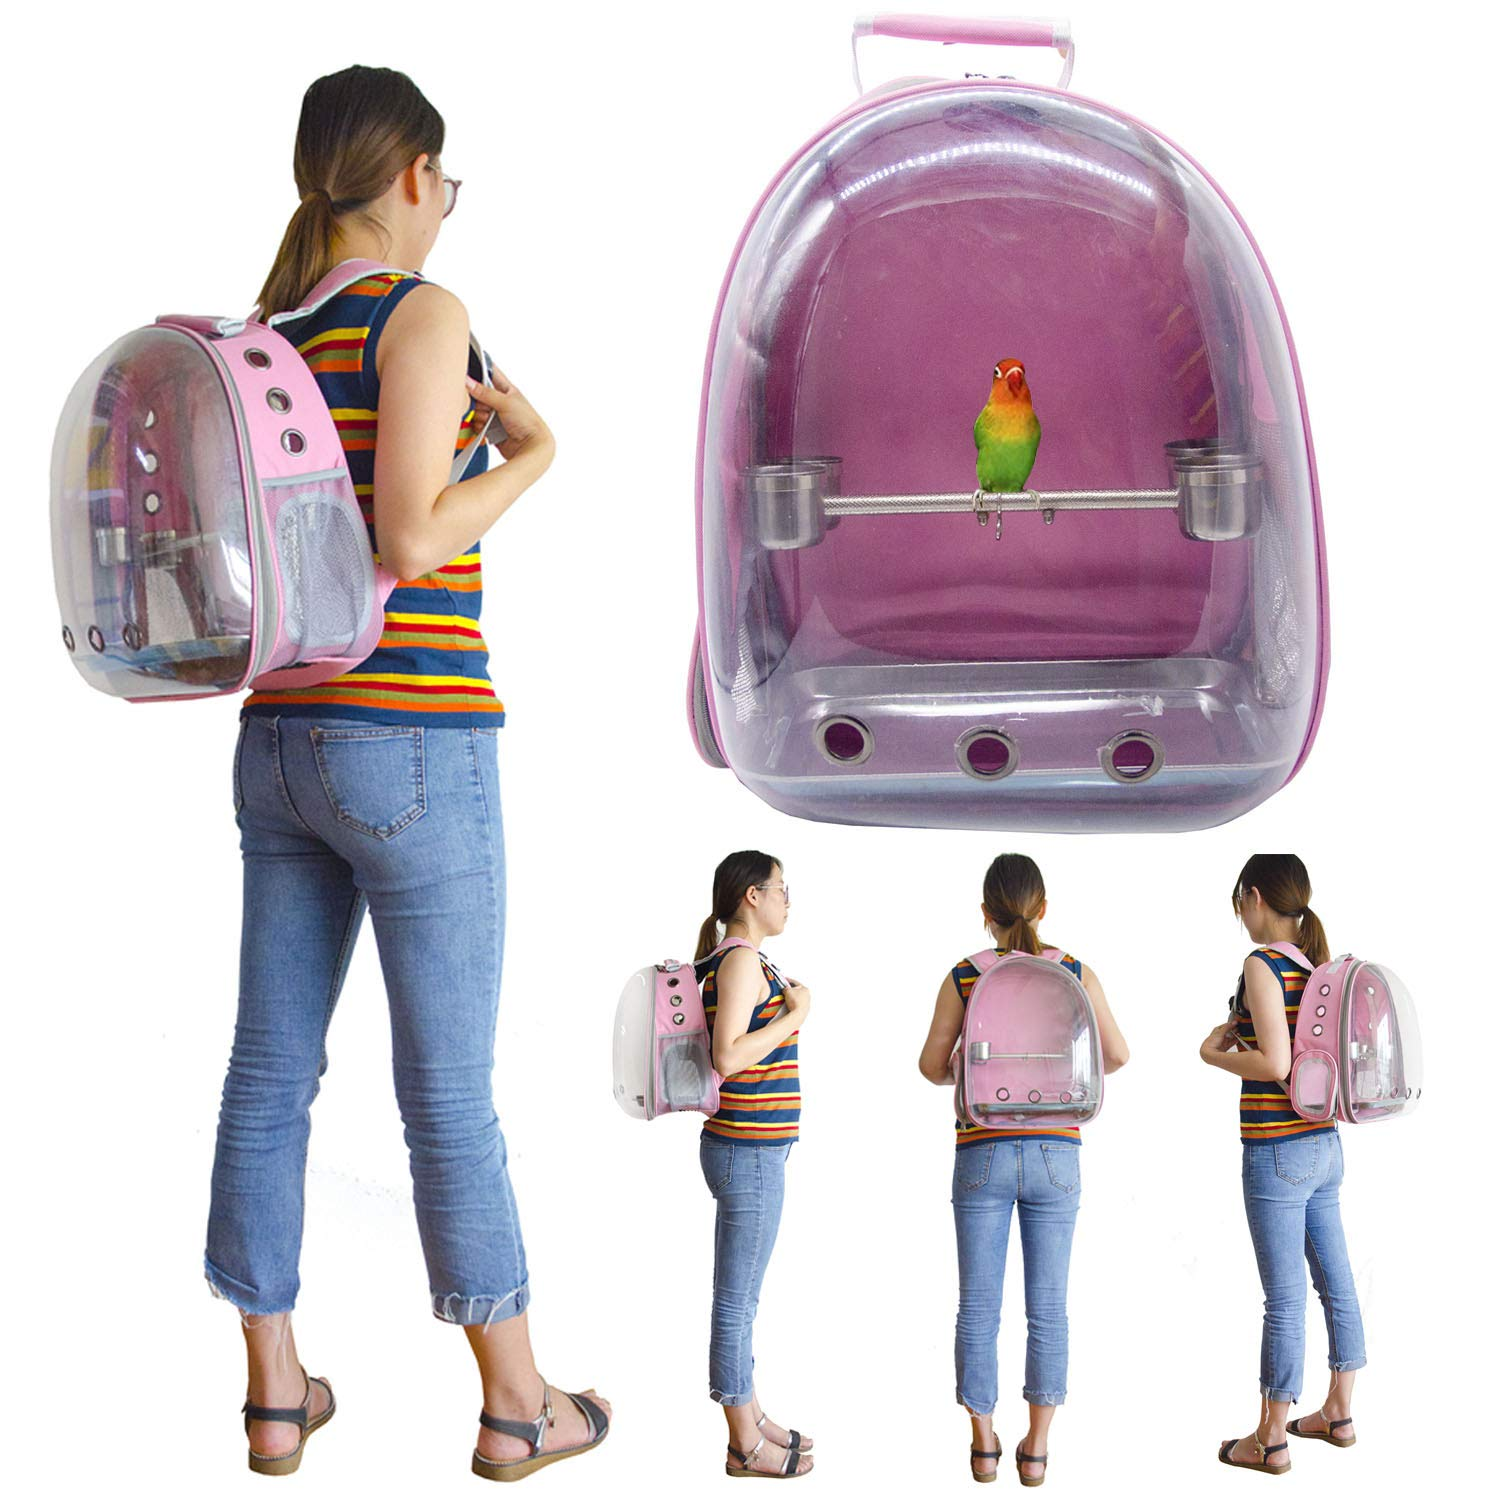 Deloky Parrot Bird Carrier Space Capsule -Transparent Breathable 360° Sightseeing Outdoor Bird Travel Bag, Backpack with Stainless Steel Bird Stand perches by Deloky